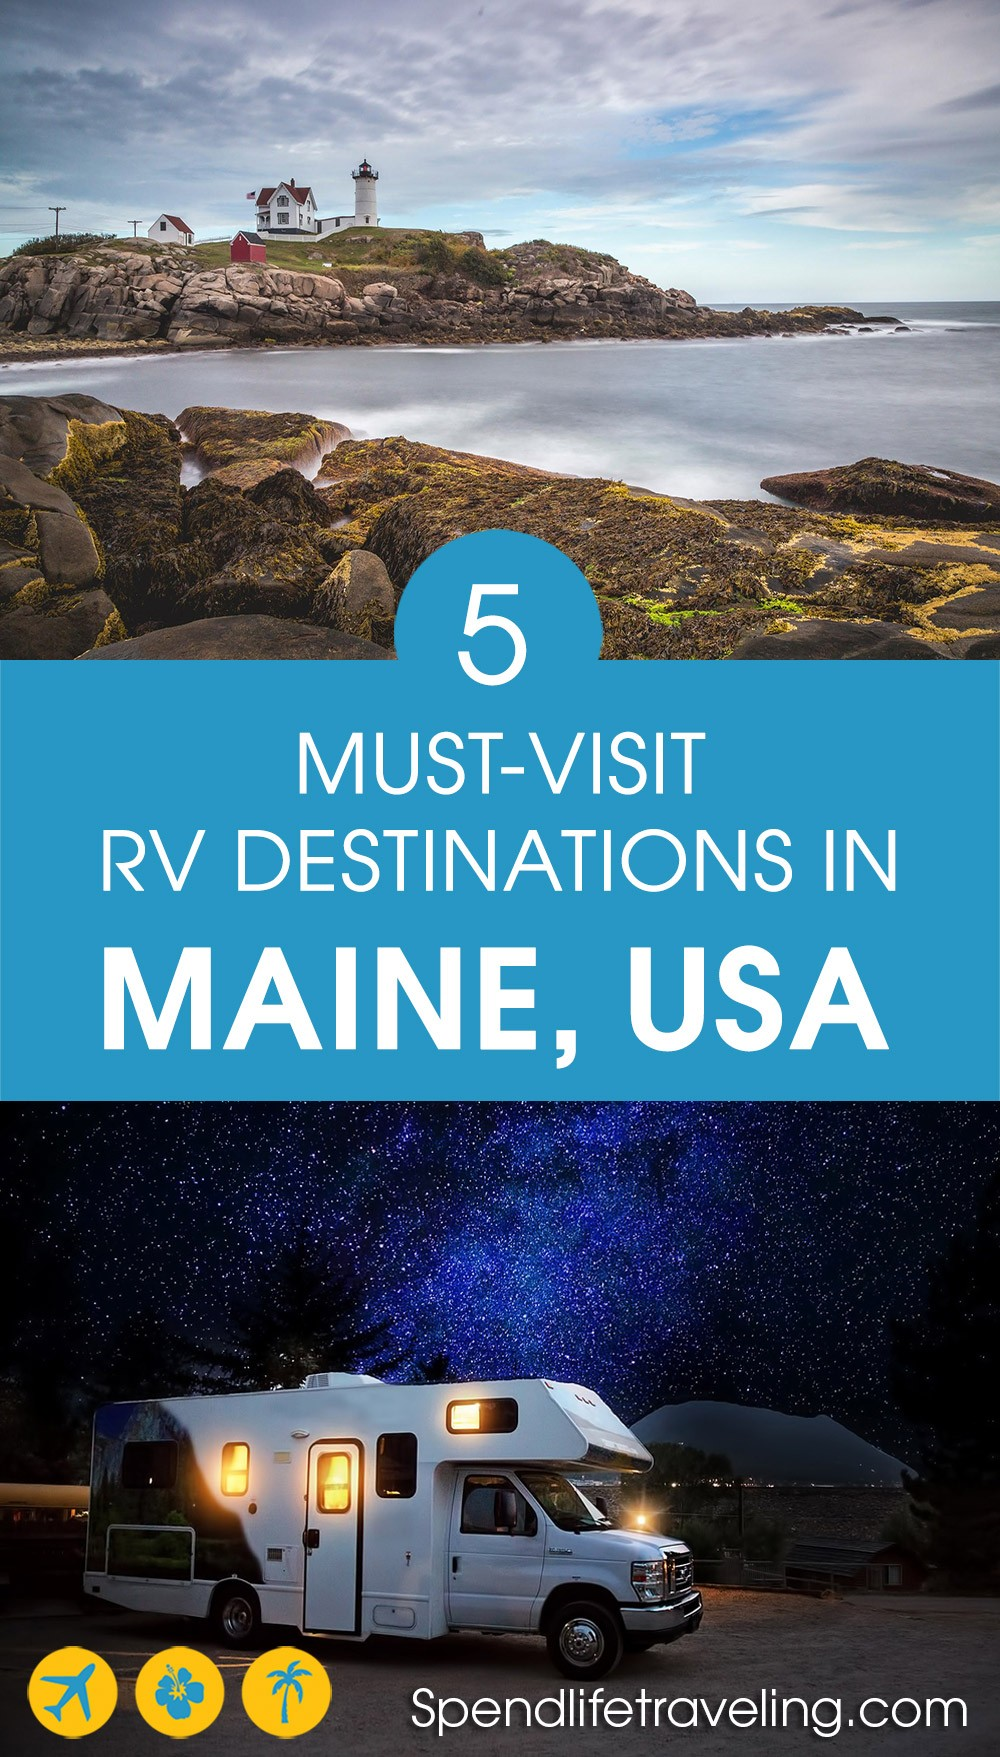 Thinking about exploring Maine in an RV? These are 5 top places to visit and where to stay. #RVing #visitMaine #travelMaine